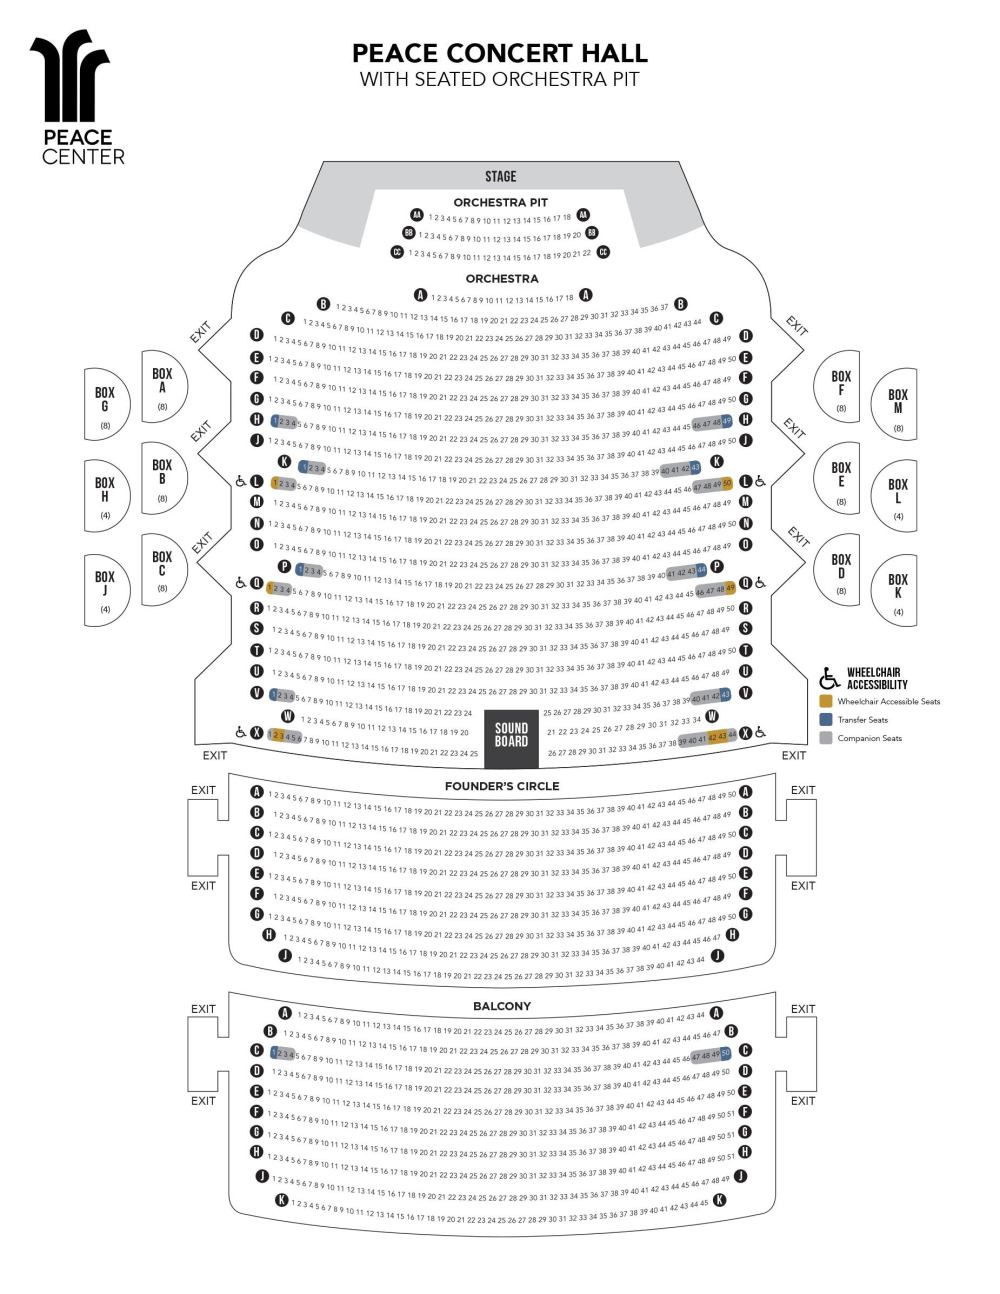 medium resolution of view the peace concert hall seating chart